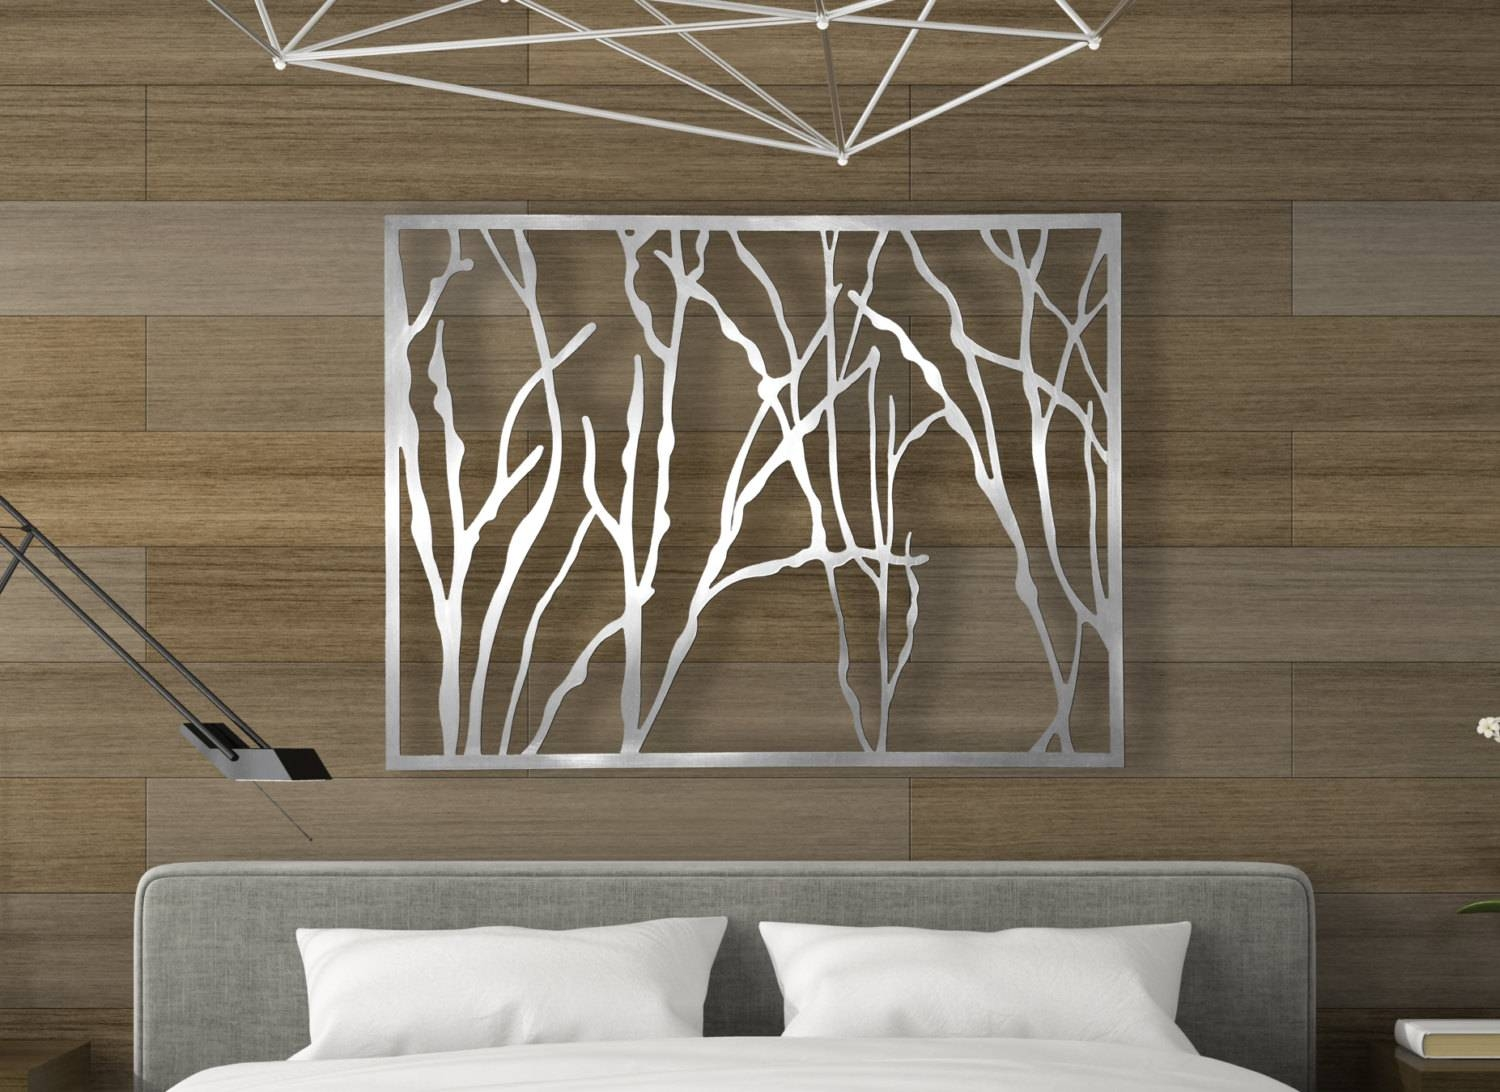 best 20 of decorative metal wall art panels. Black Bedroom Furniture Sets. Home Design Ideas